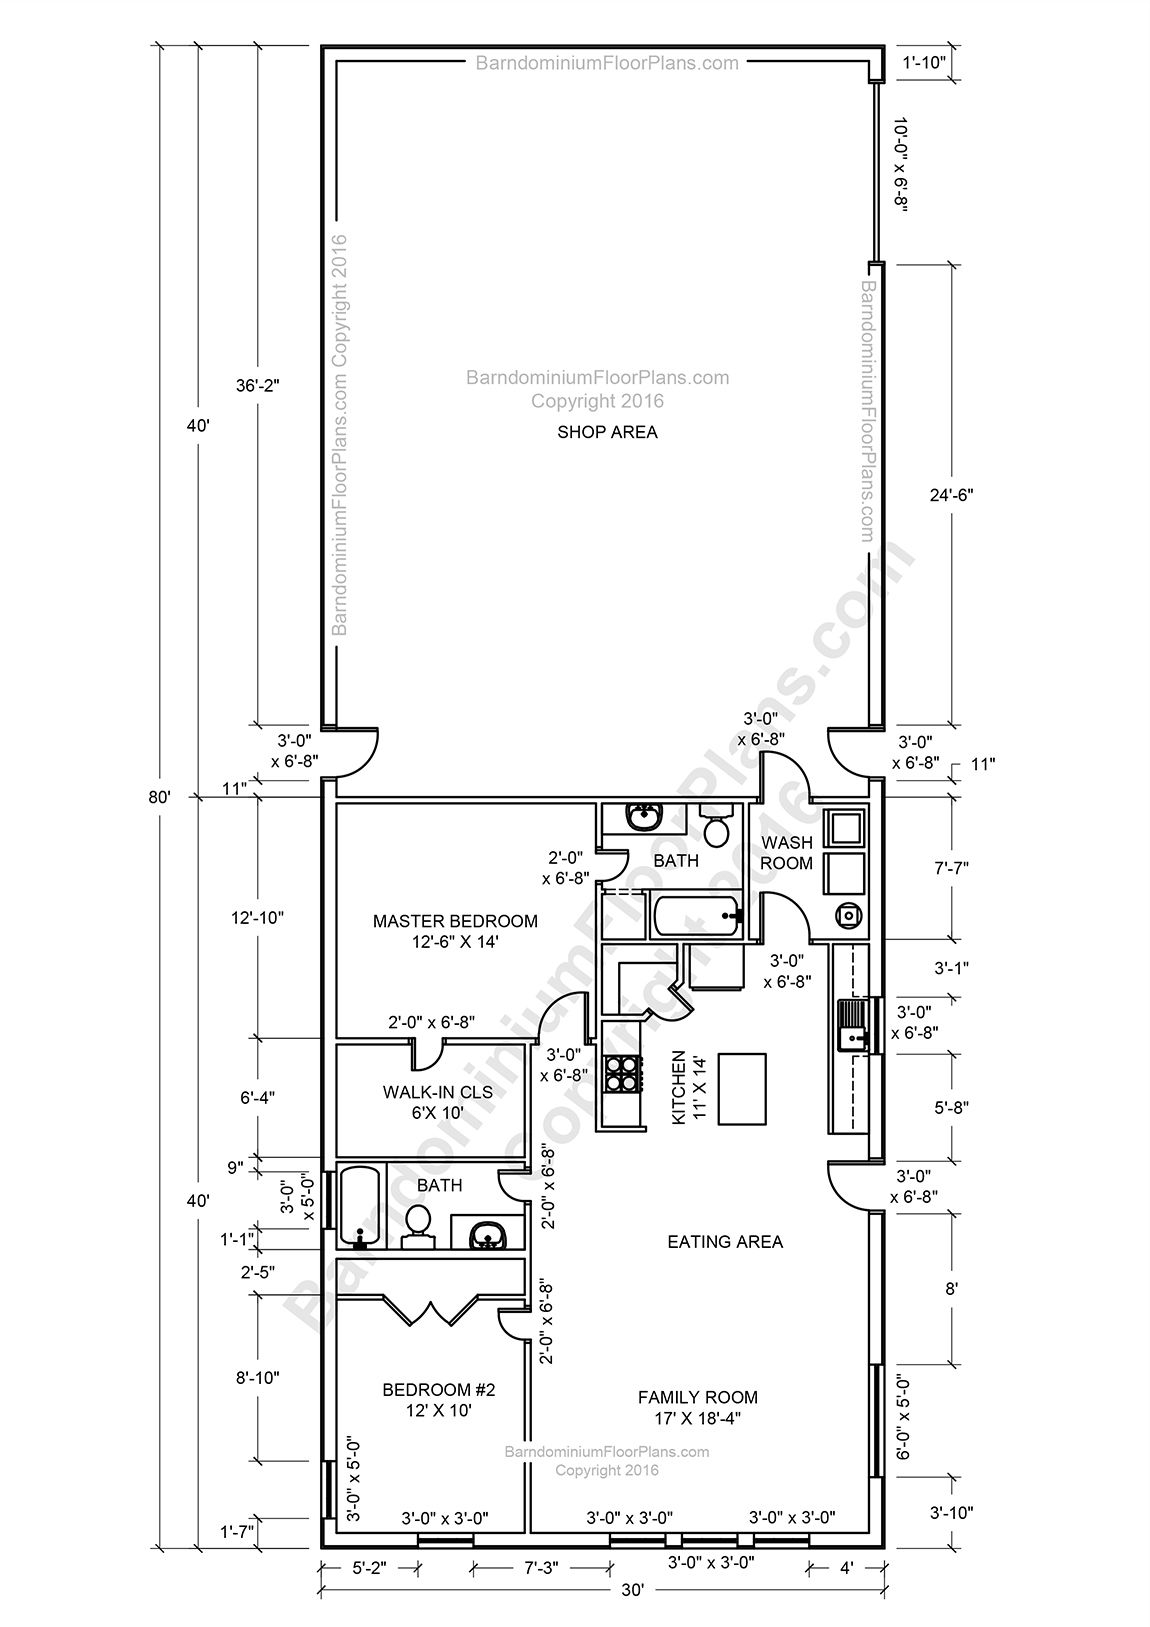 2 Bedroom 2 Bath Barndominium Floor Plan For 30 Foot Wide Building With A 30 X 40 Shop Area Barndominium Floor Plans Pole Barn House Plans Metal Building Homes